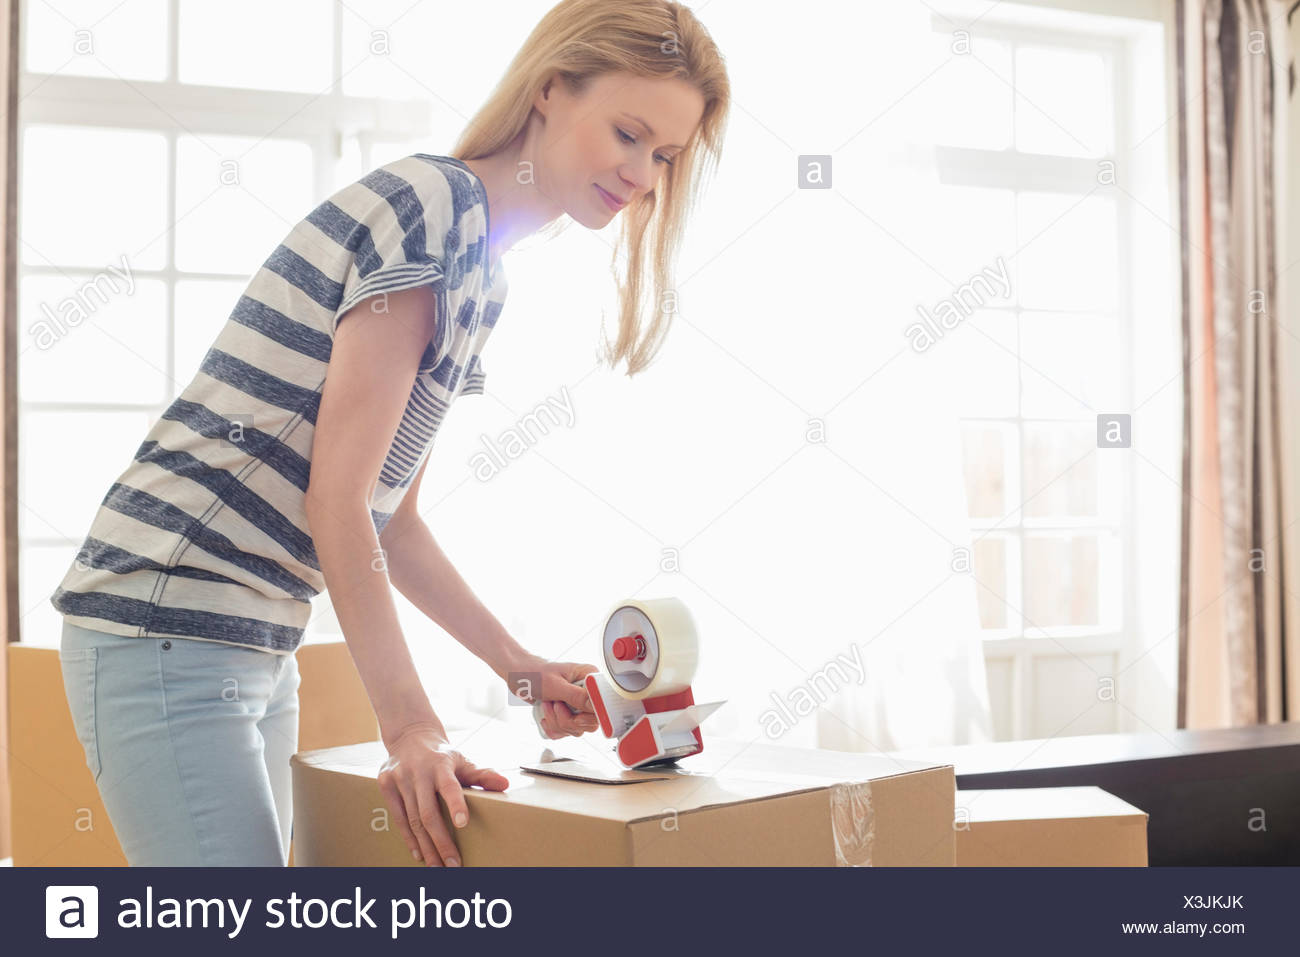 Woman packing moving box at home - Stock Image